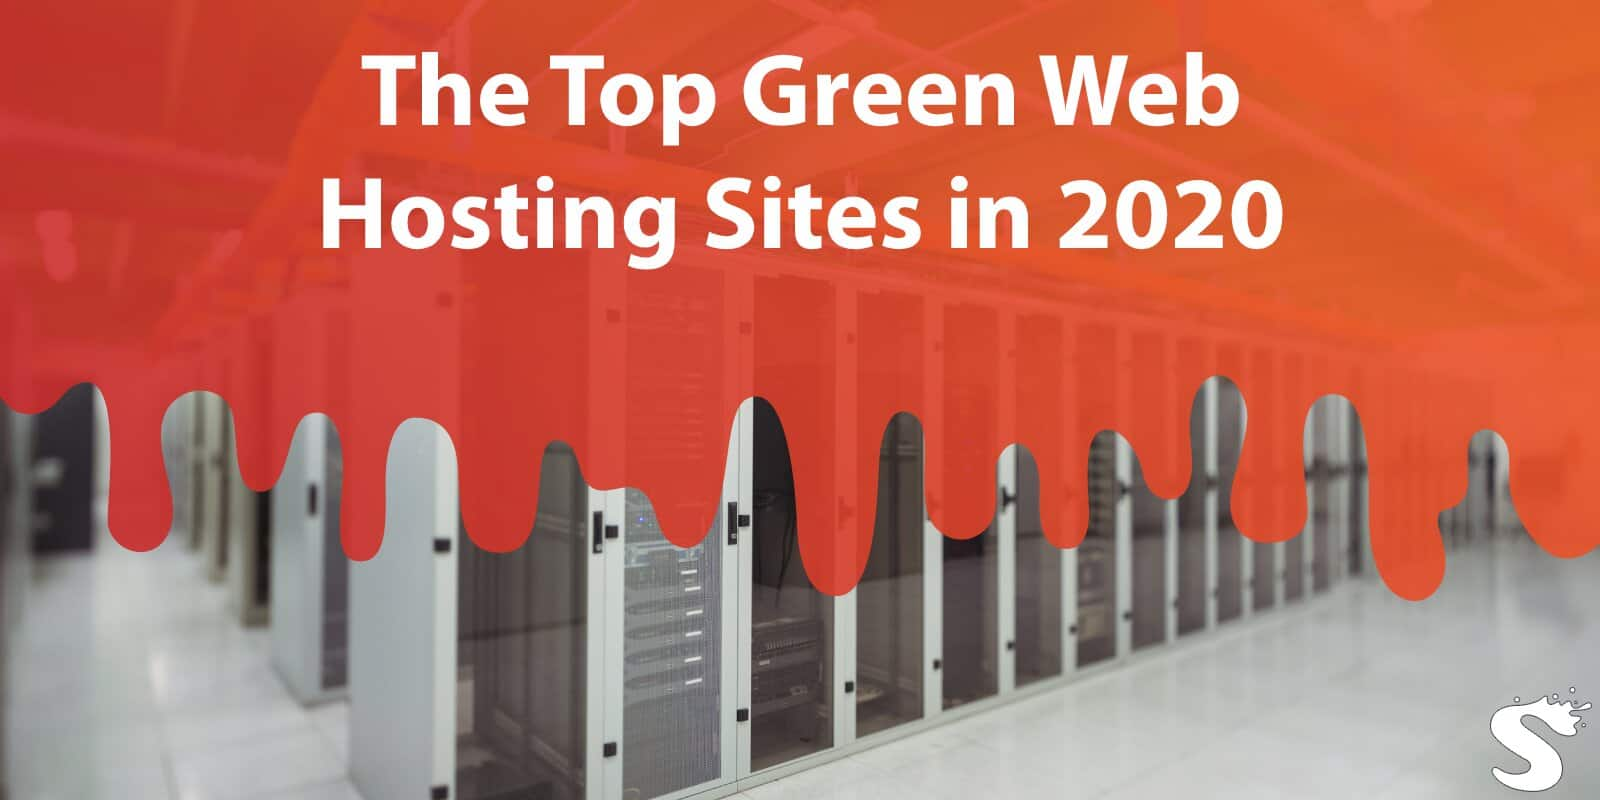 The Top Green Web Hosting Sites in 2020